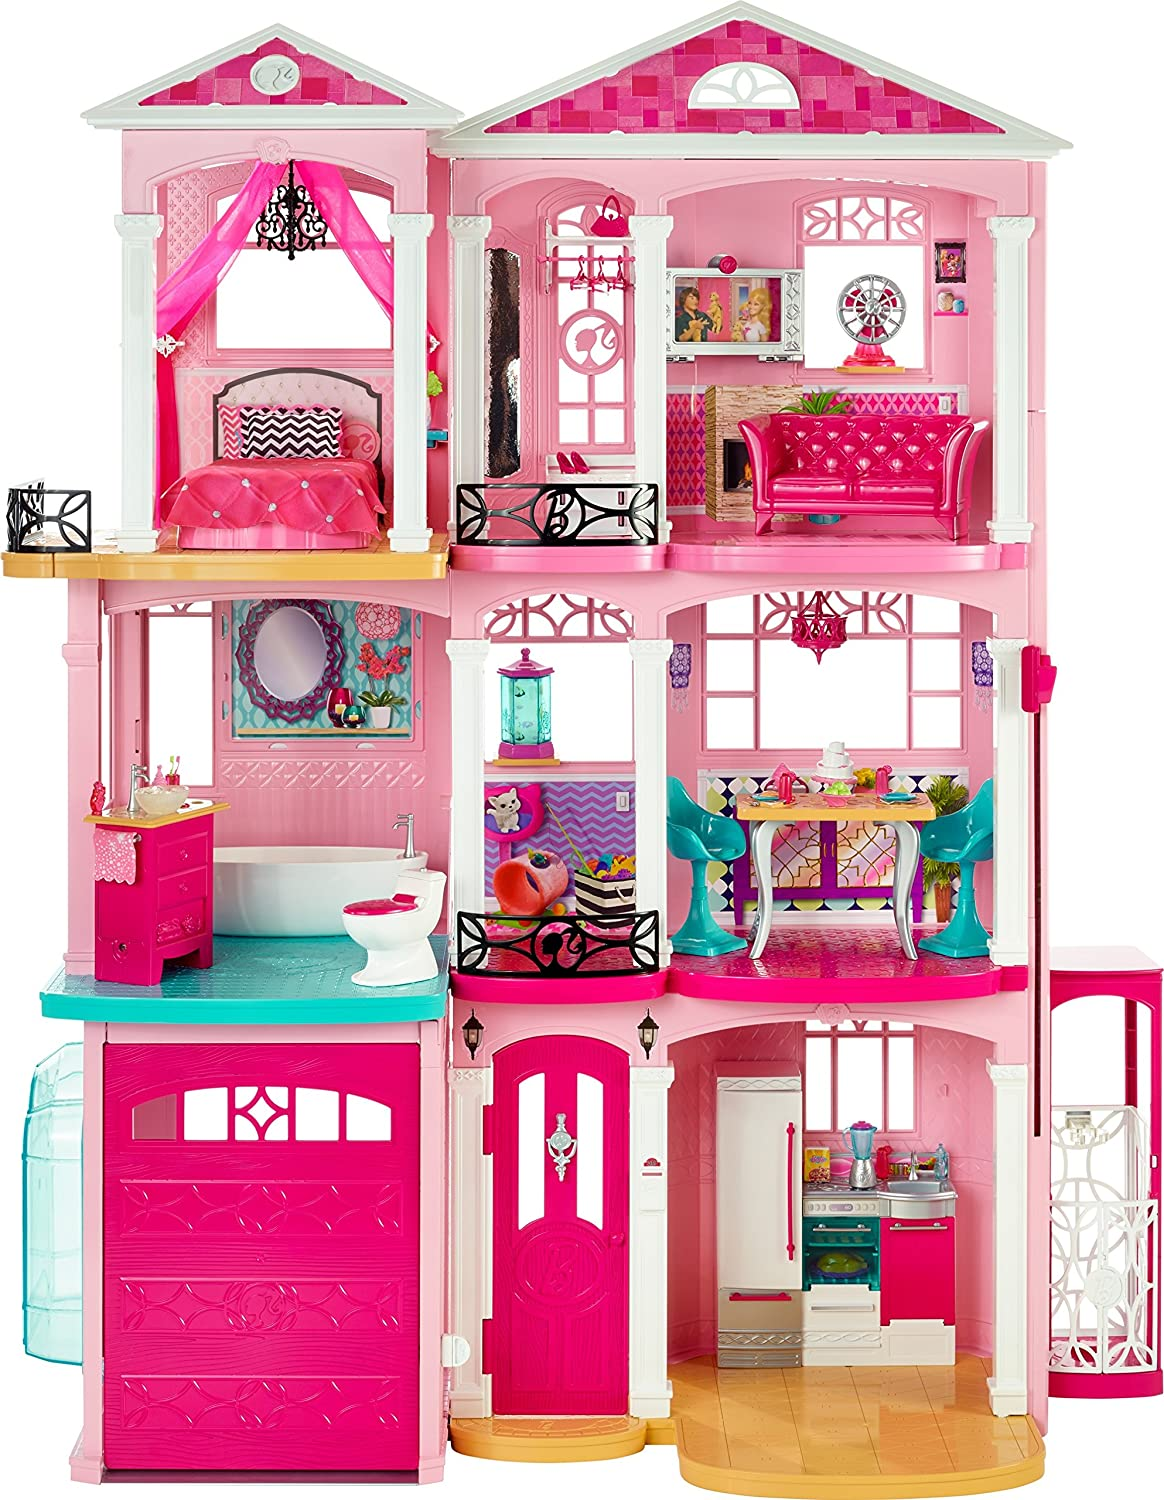 Top 9 Best Dollhouse for Toddlers Reviews in 2021 10